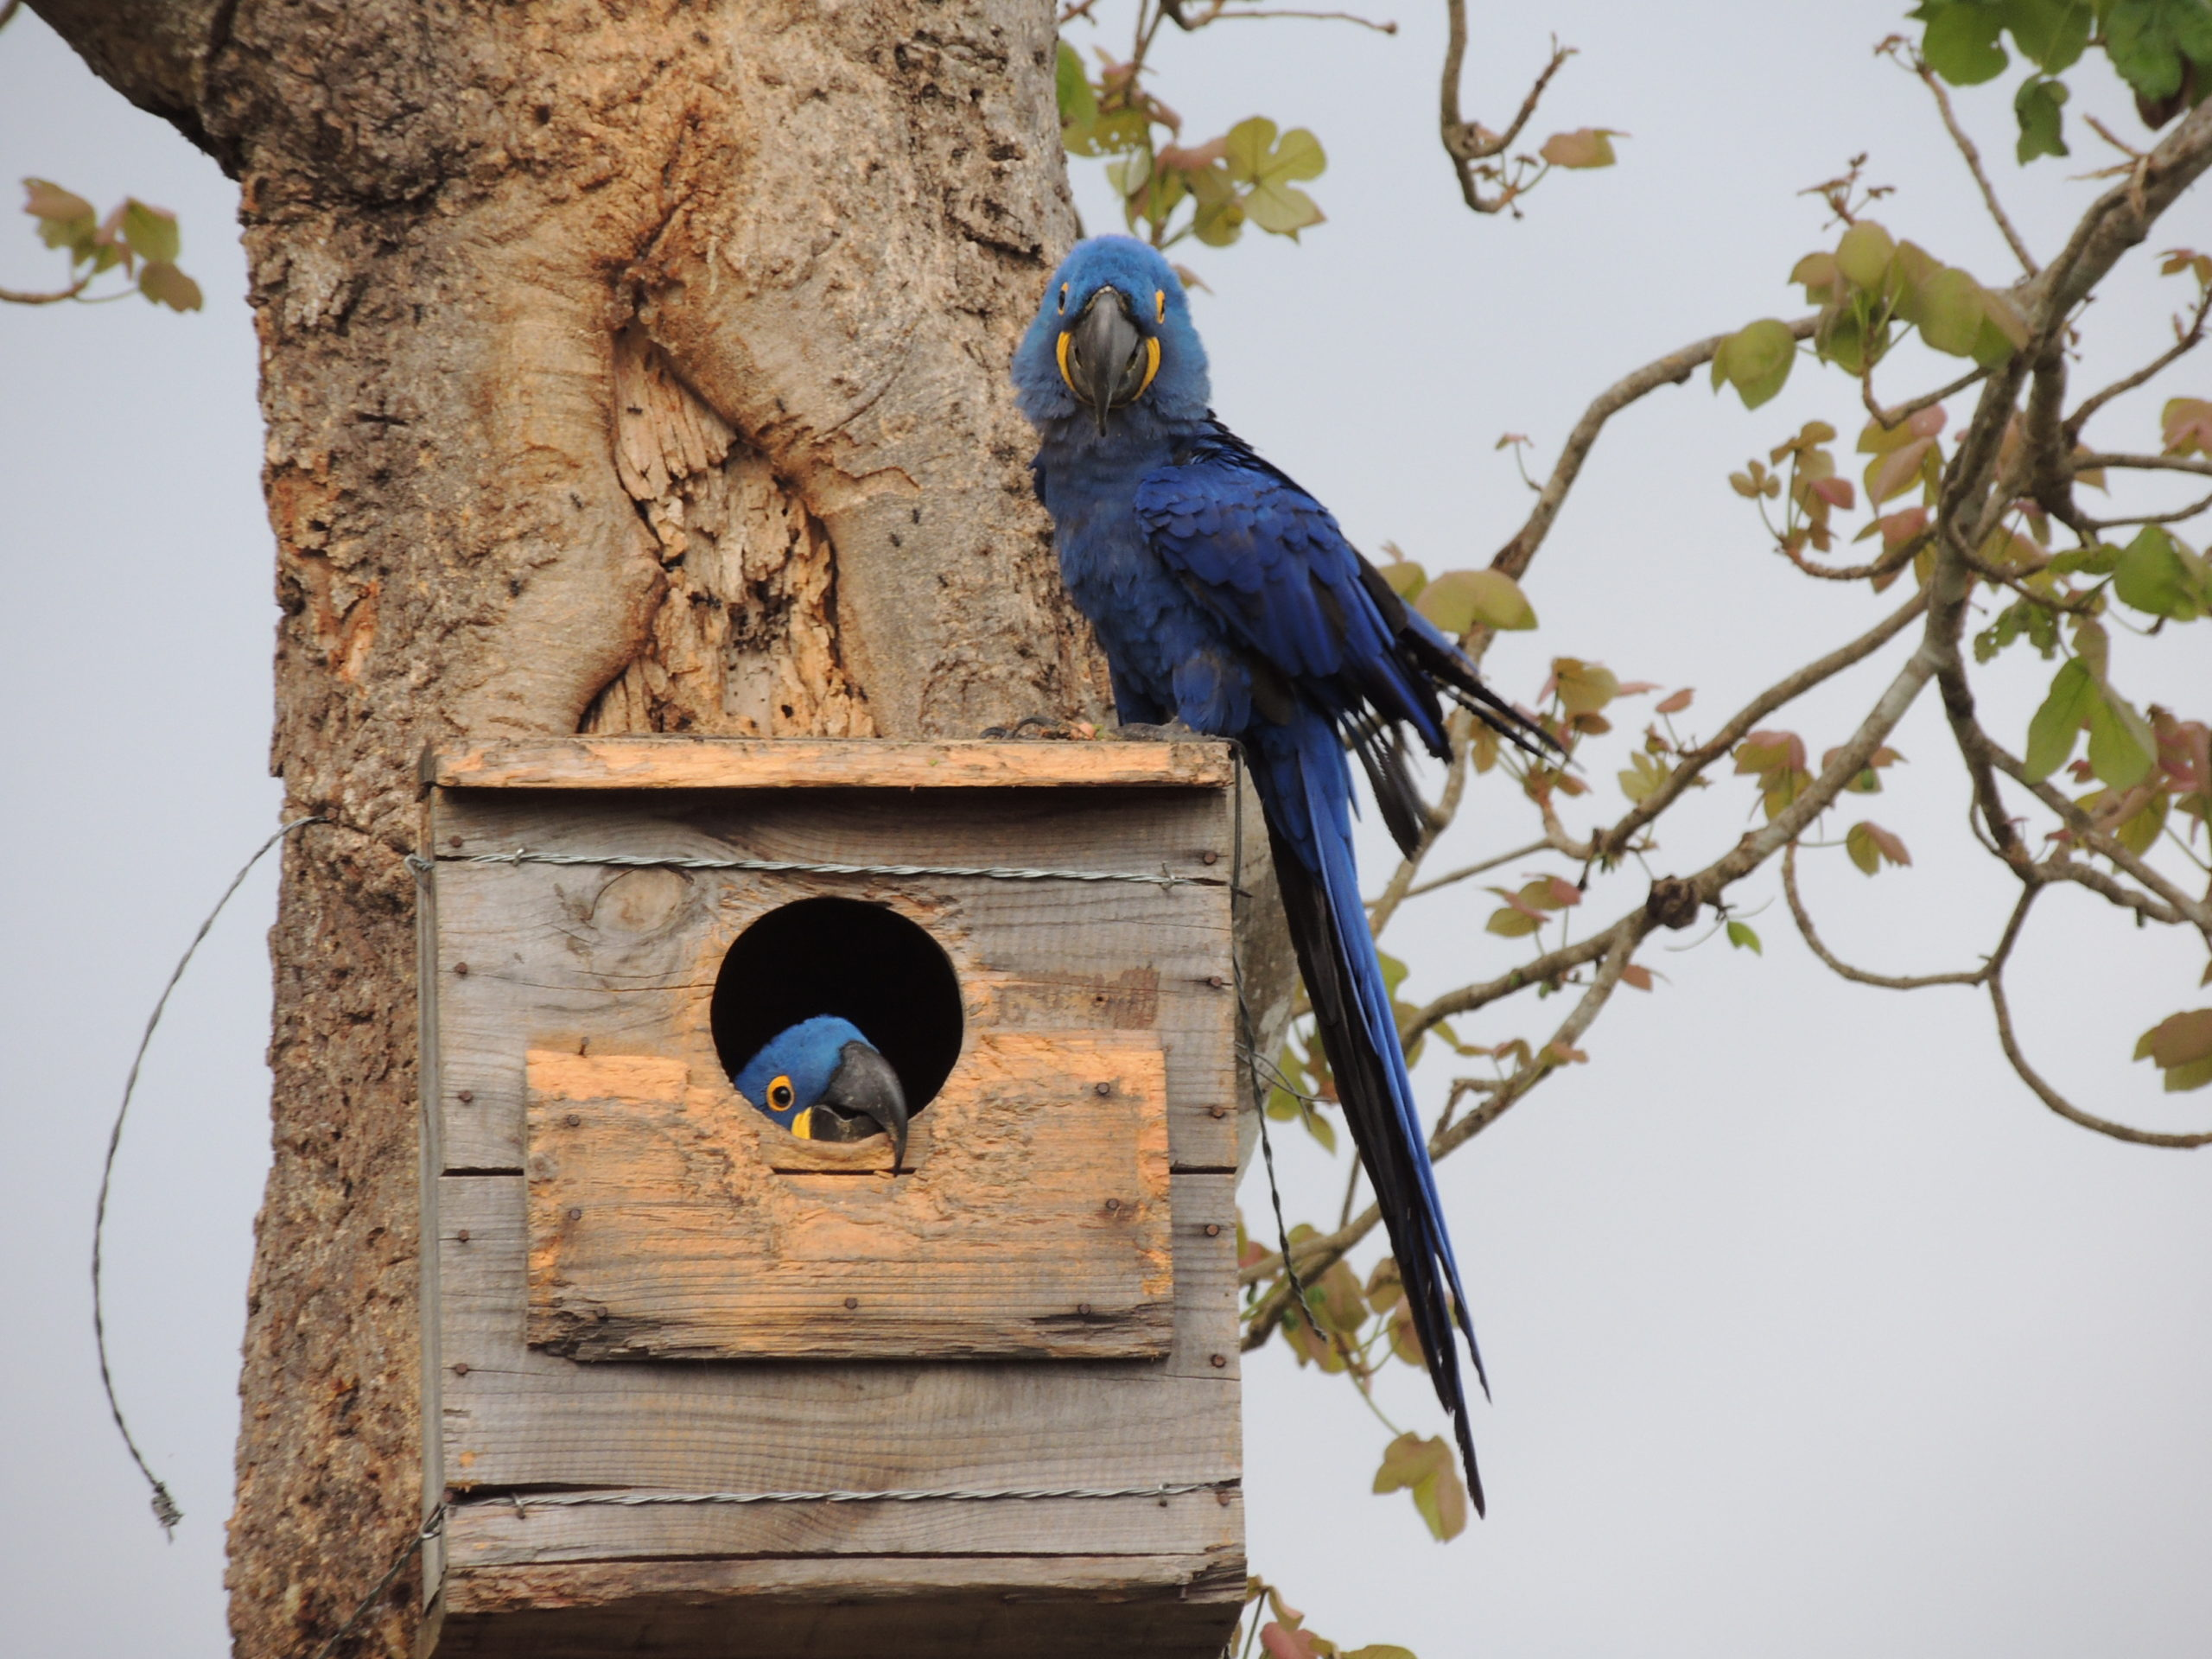 A pair of hyacinth macaws in an artificial nest. Conservation projects in the Pantanal have helped boost the population of the species. Image by Fernanda Fontoura.